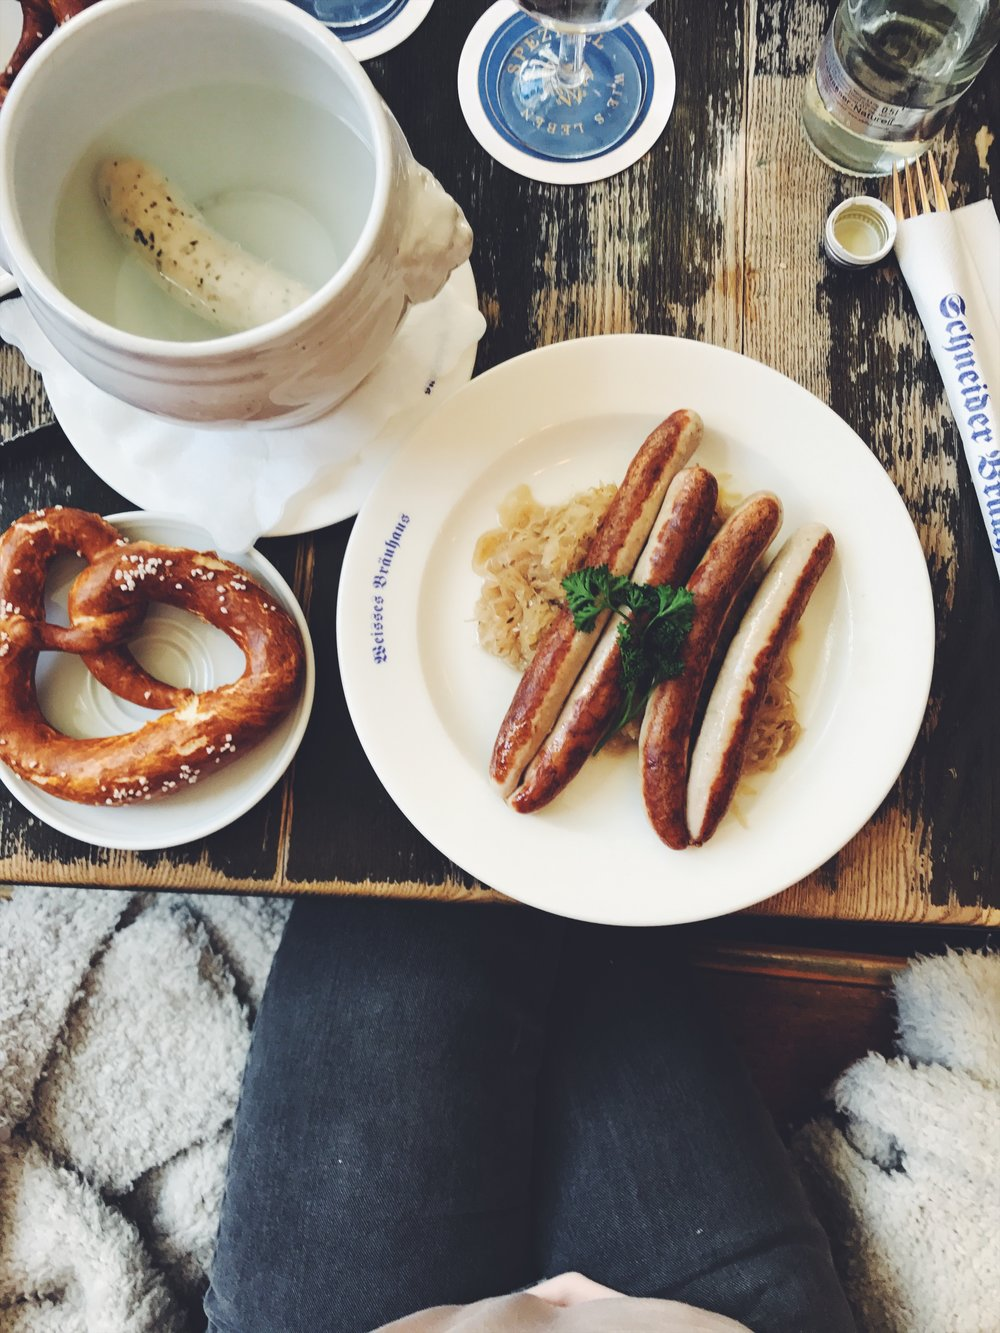 My 1st and only German breakfast. Bratwurst with sauerkraut and pretzels!